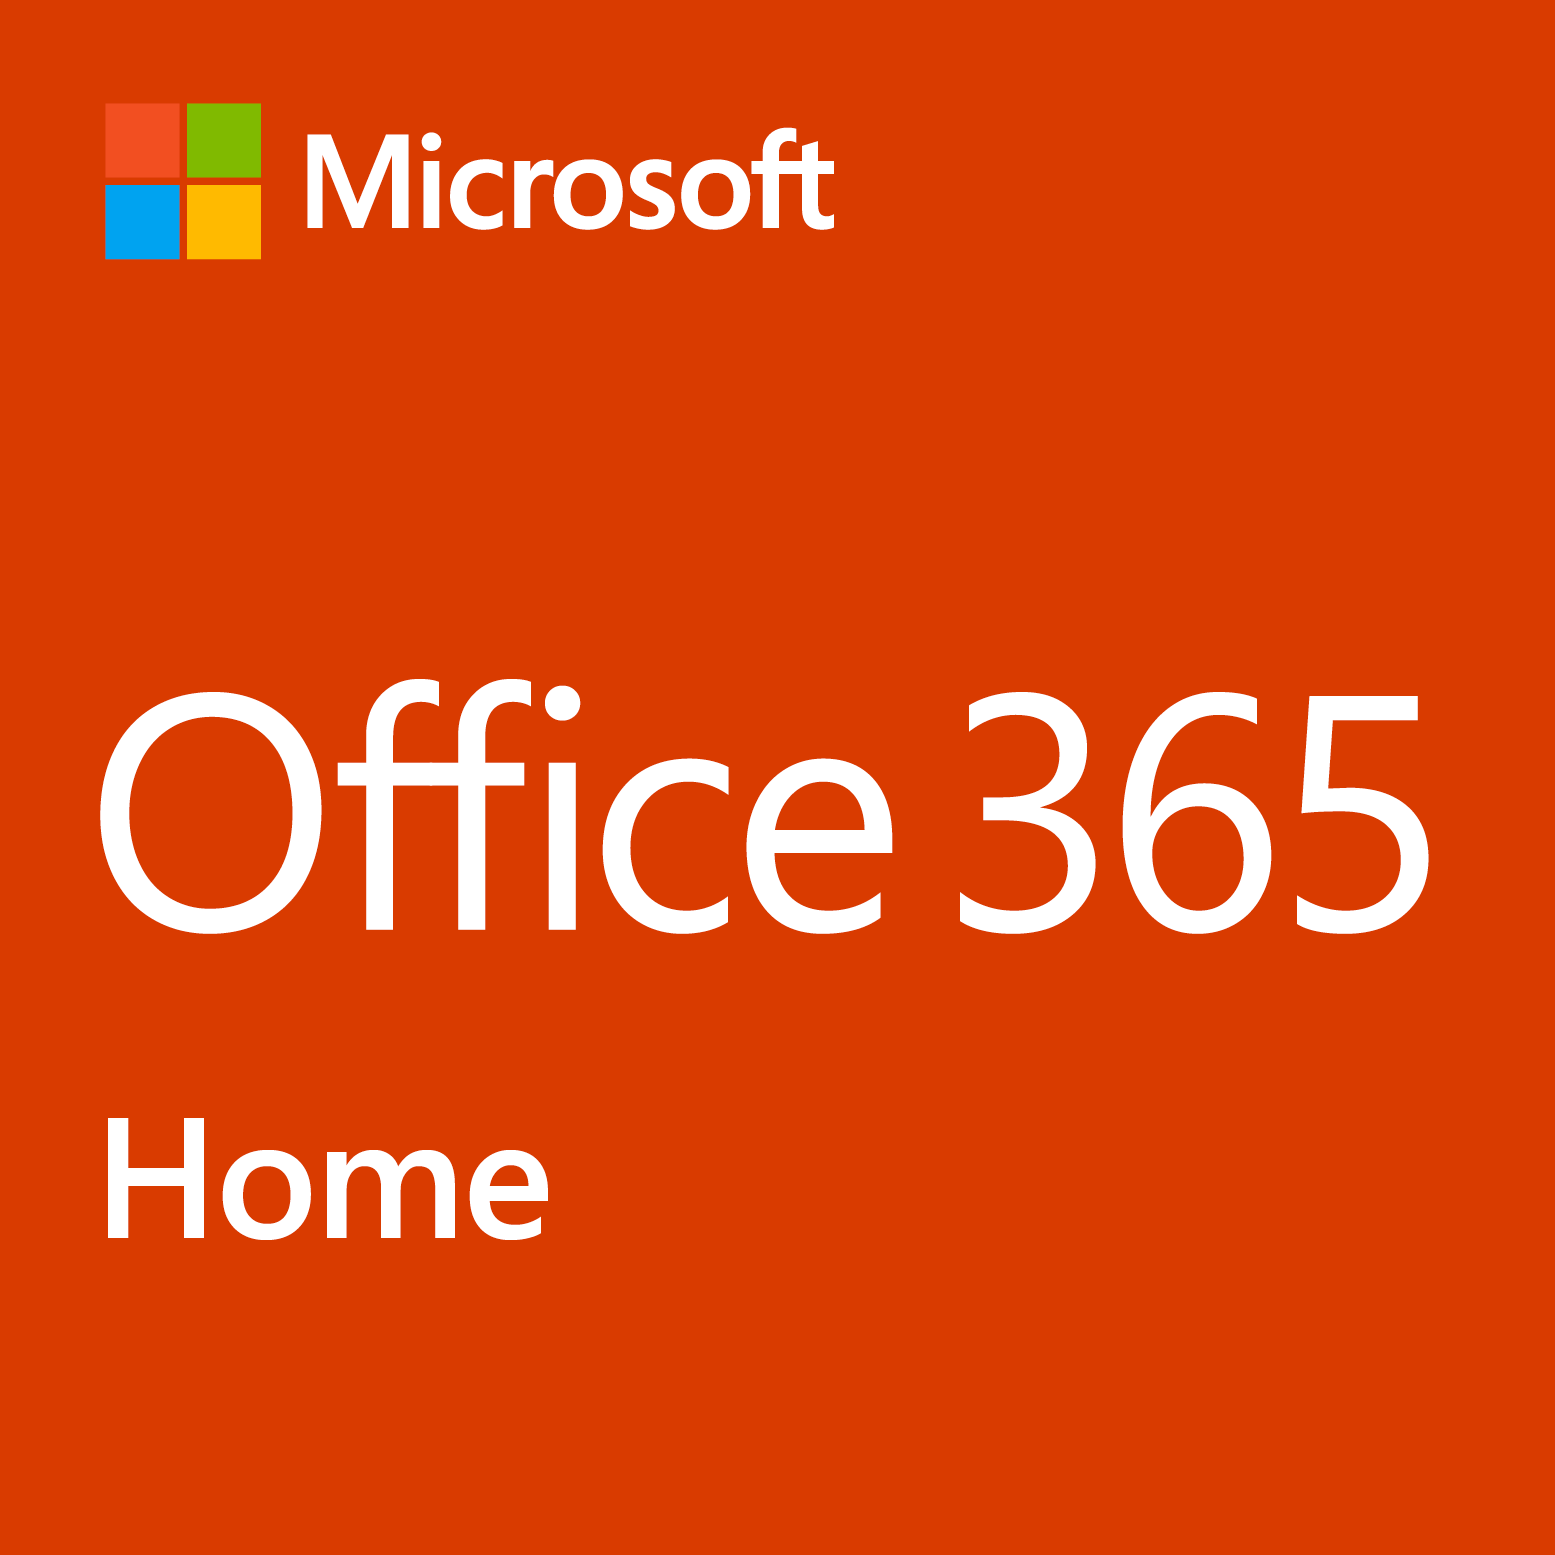 microsoft office 365 home. office 365 home word microsoft c